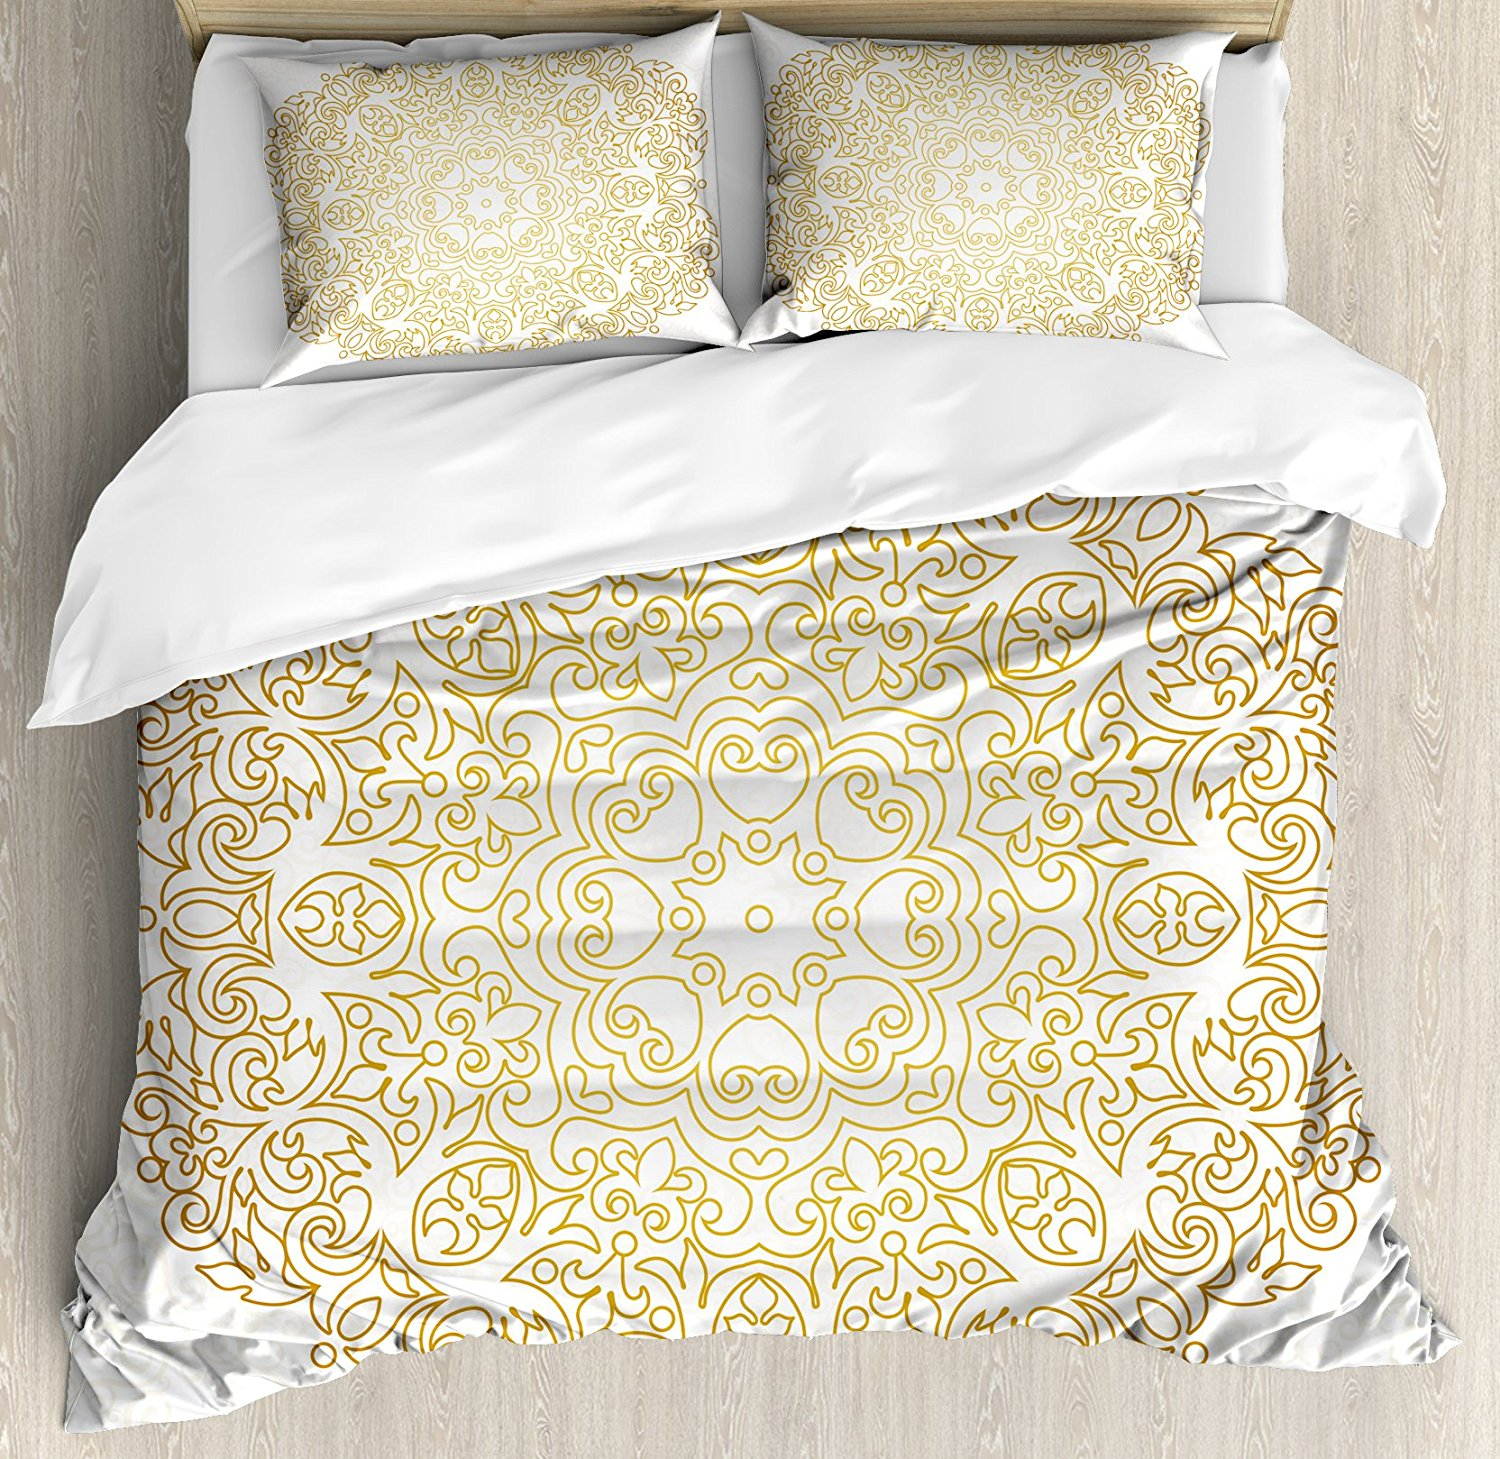 Mandala Duvet Cover Set Traditional Outline Design on Swirled Backdrop Victorian Baroque Moroccan Bedding Set Yellow and Coconut